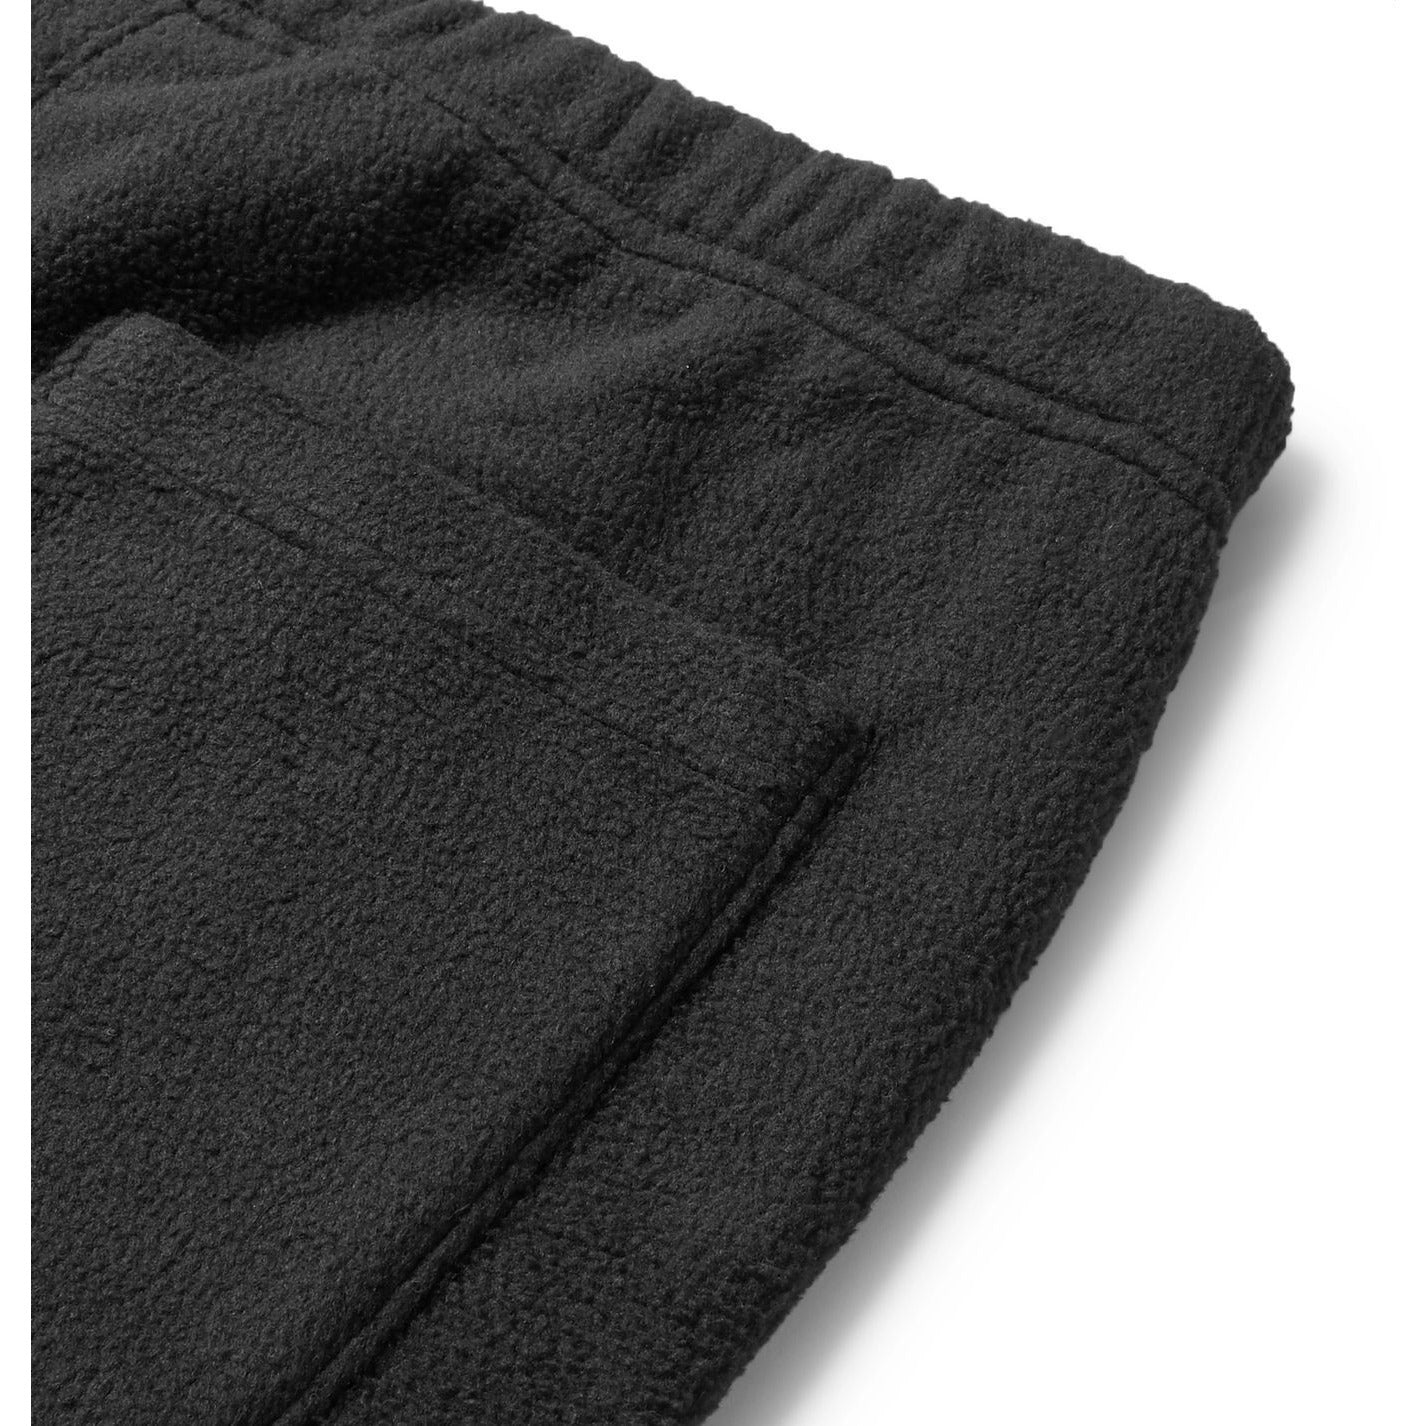 FOG - ESSENTIALS Polar Fleece Sweatpants SS20 (Black)